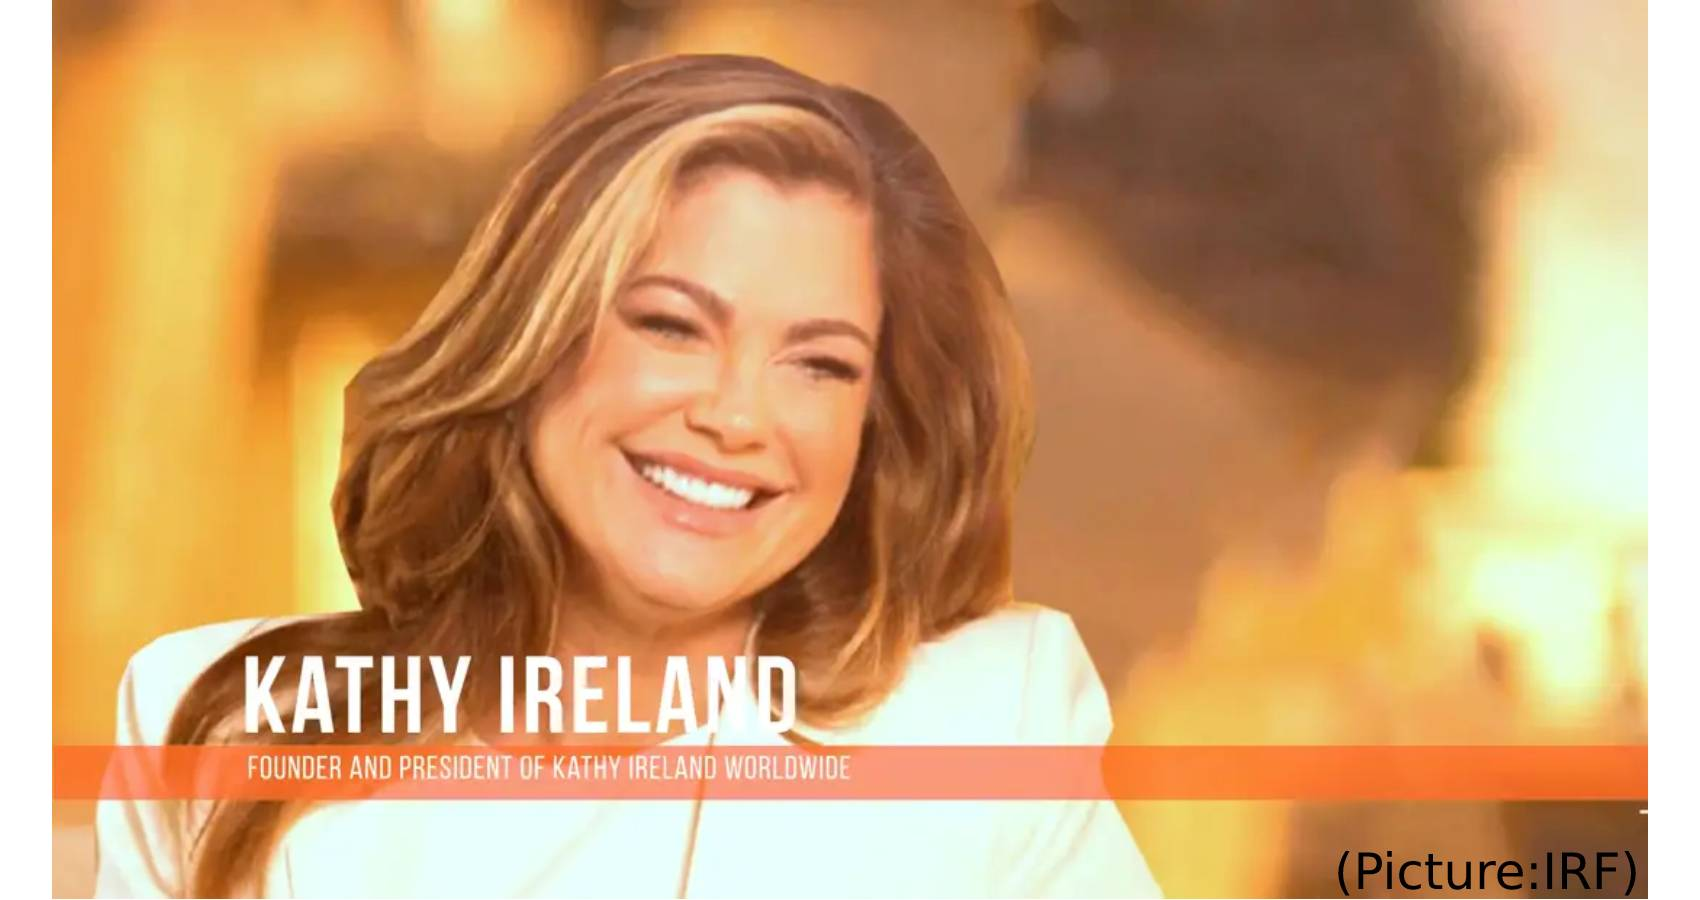 Kathy Ireland To Be Honored For Work Advancing International Religious Freedom (IRF)